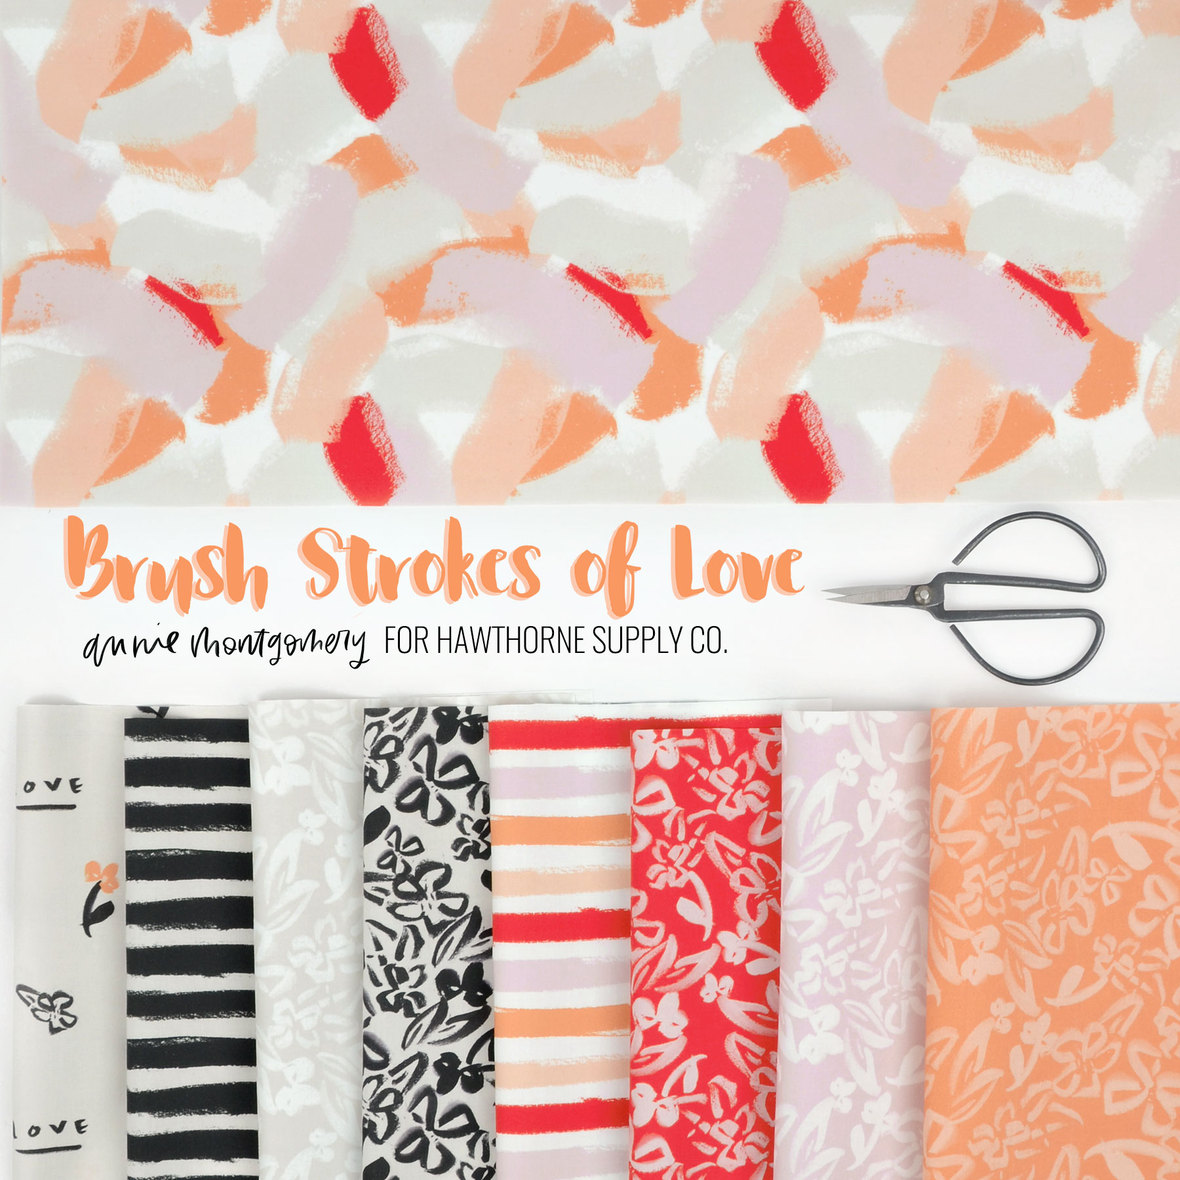 Brush-Strokes-of-Love-Annie-Montgomery-Design-for-Hawthorne-Supply-Co